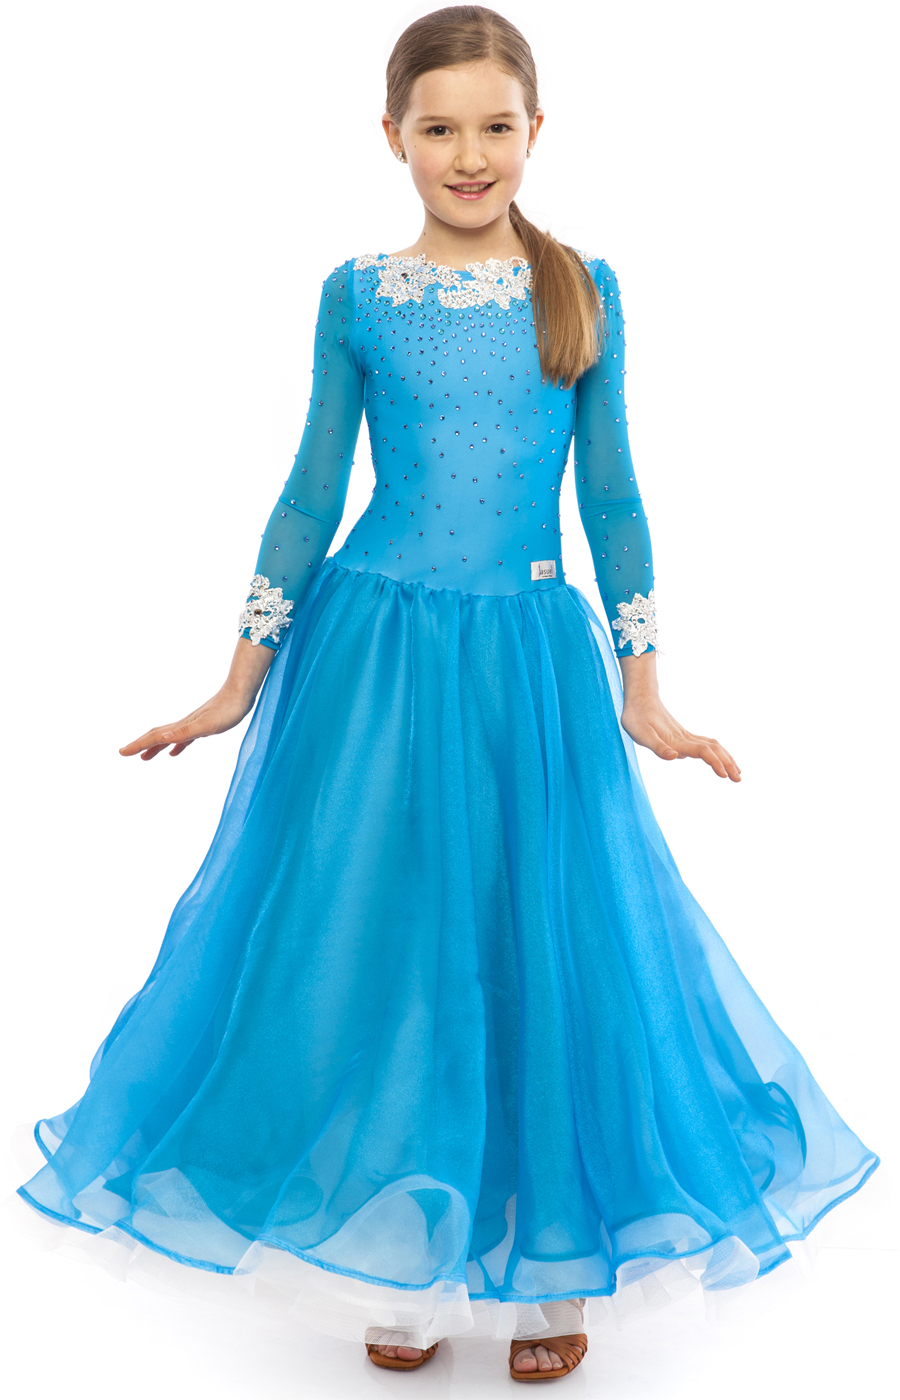 Teen Girl Blue Ballroom Dress Cinderella